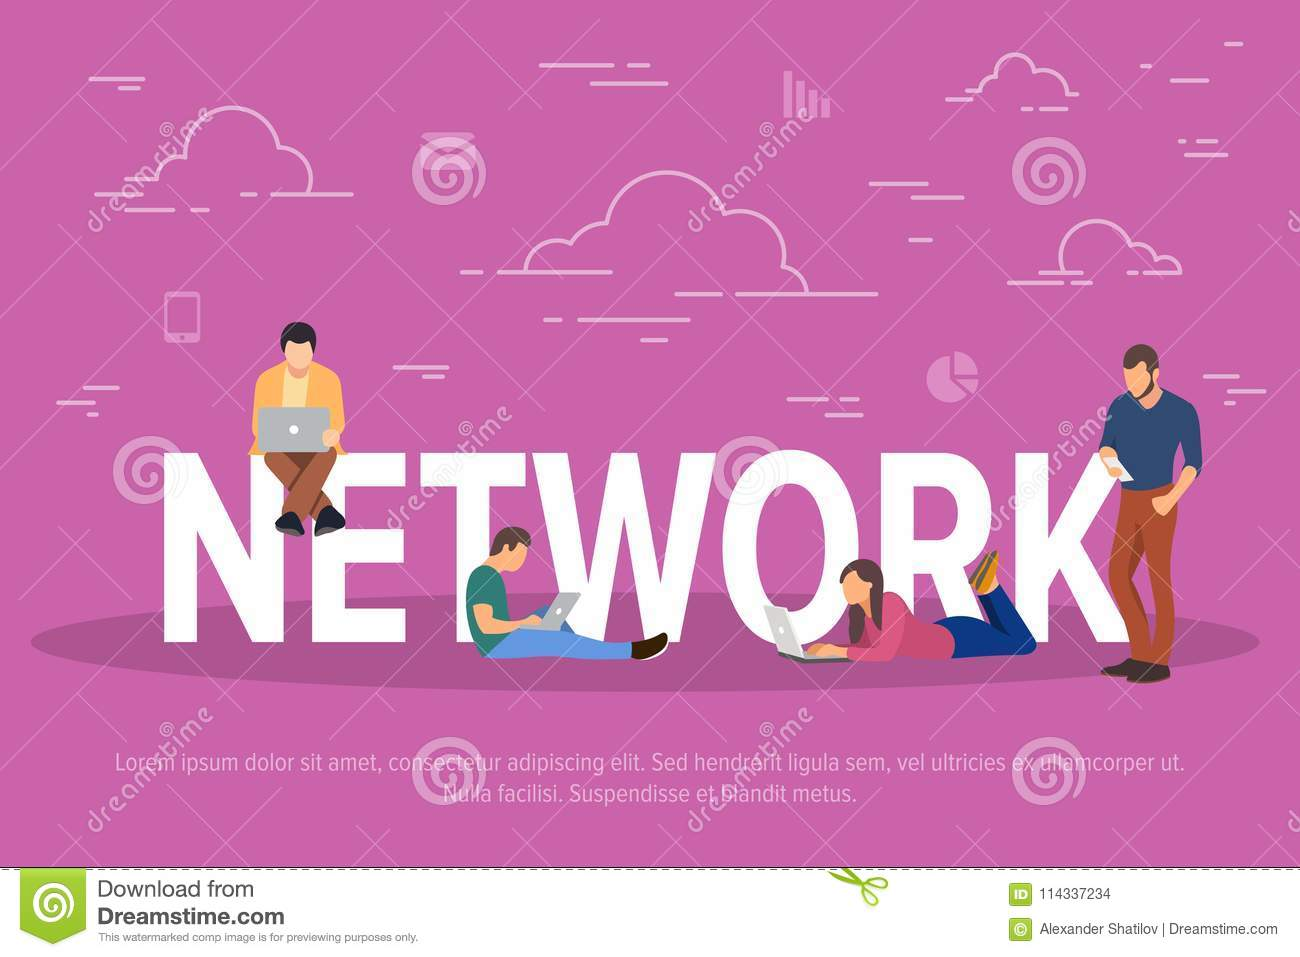 Network concept vector illustration. Business people using devices for work through the network. Flat concept of young